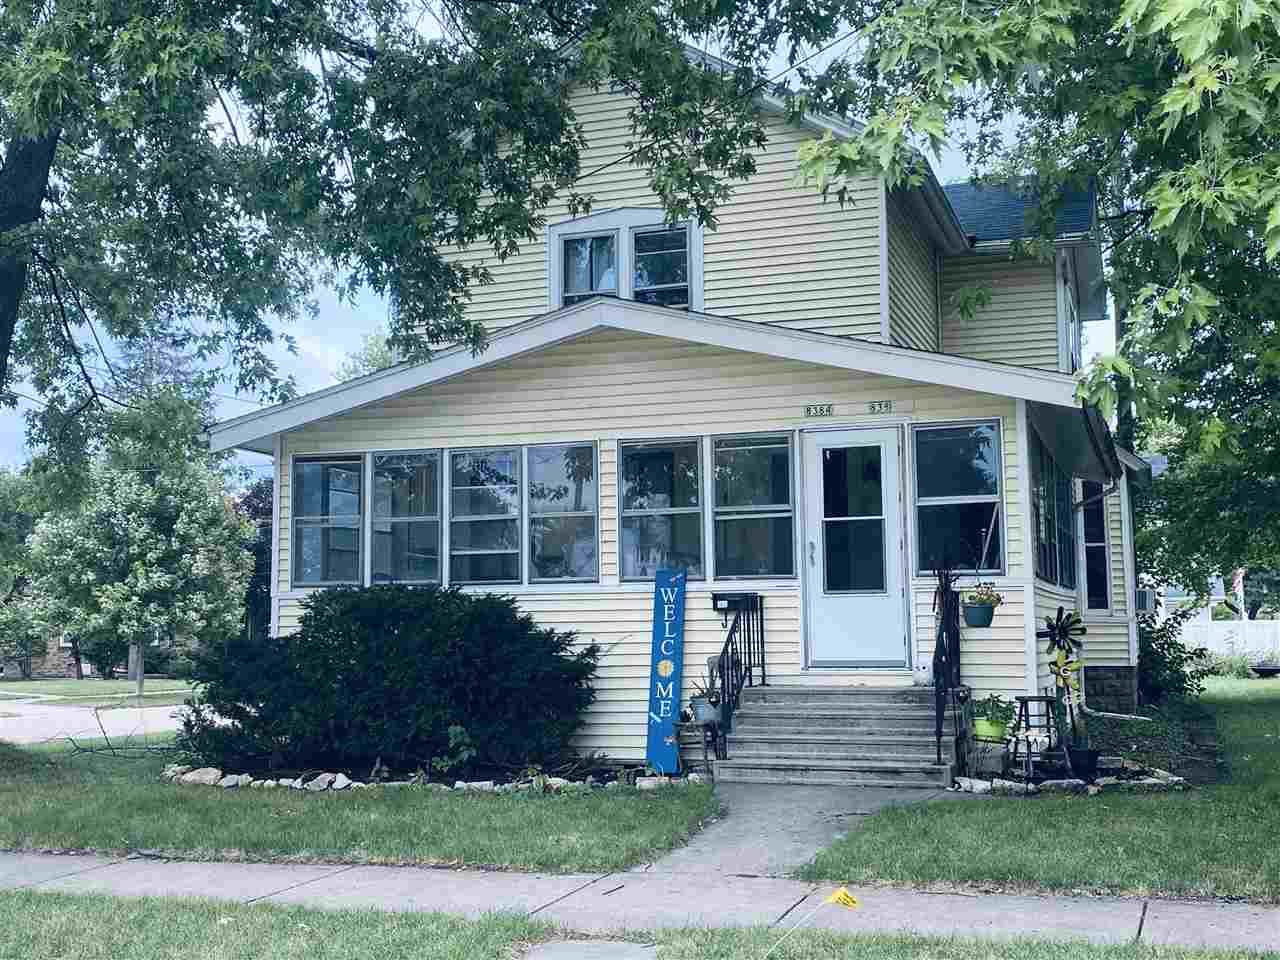 838 MT VERNON Street, Oshkosh, WI 54901 - MLS#: 50228519